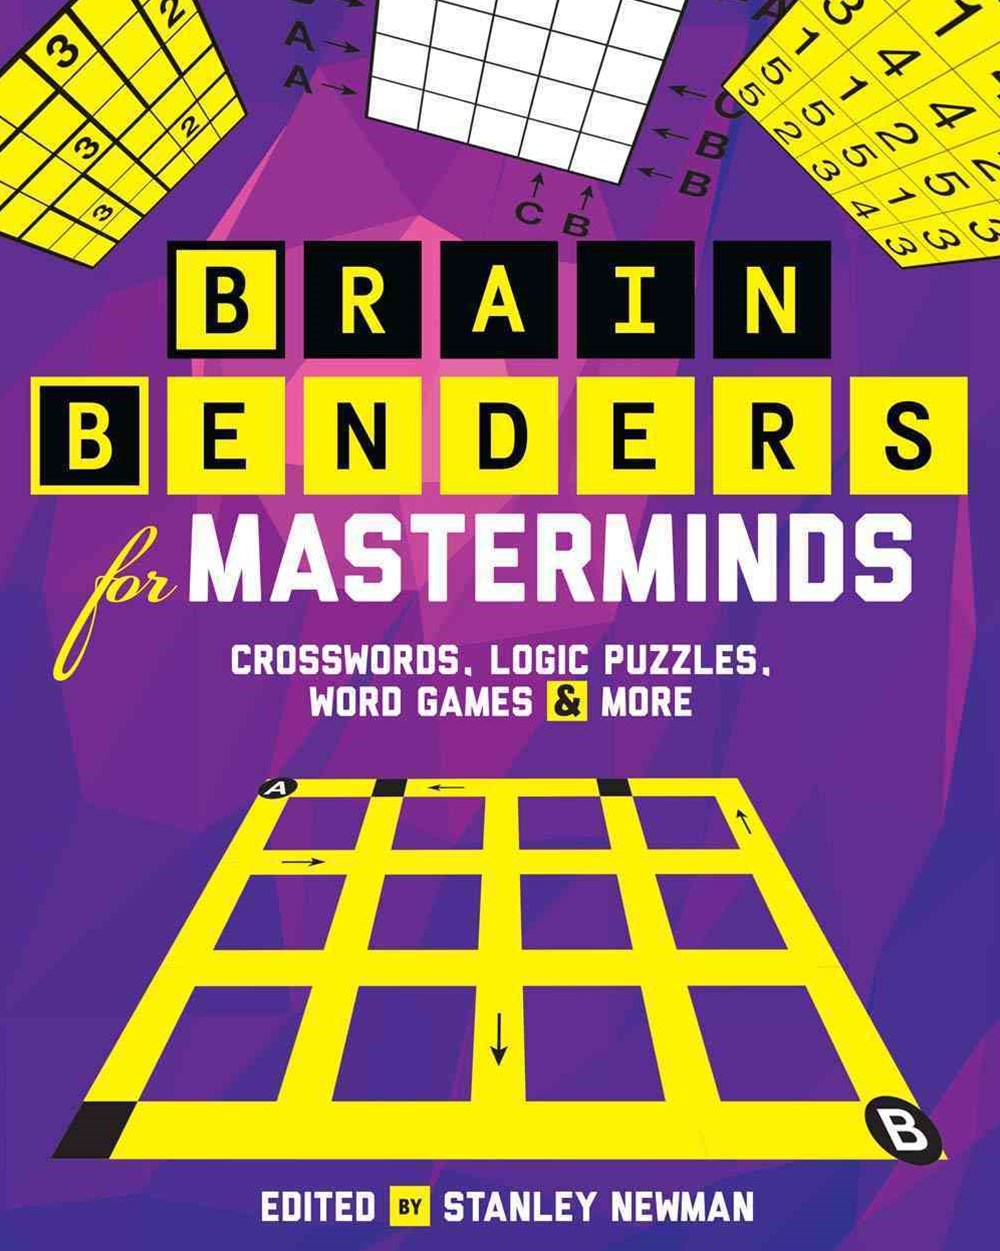 Brain Benders for Masterminds